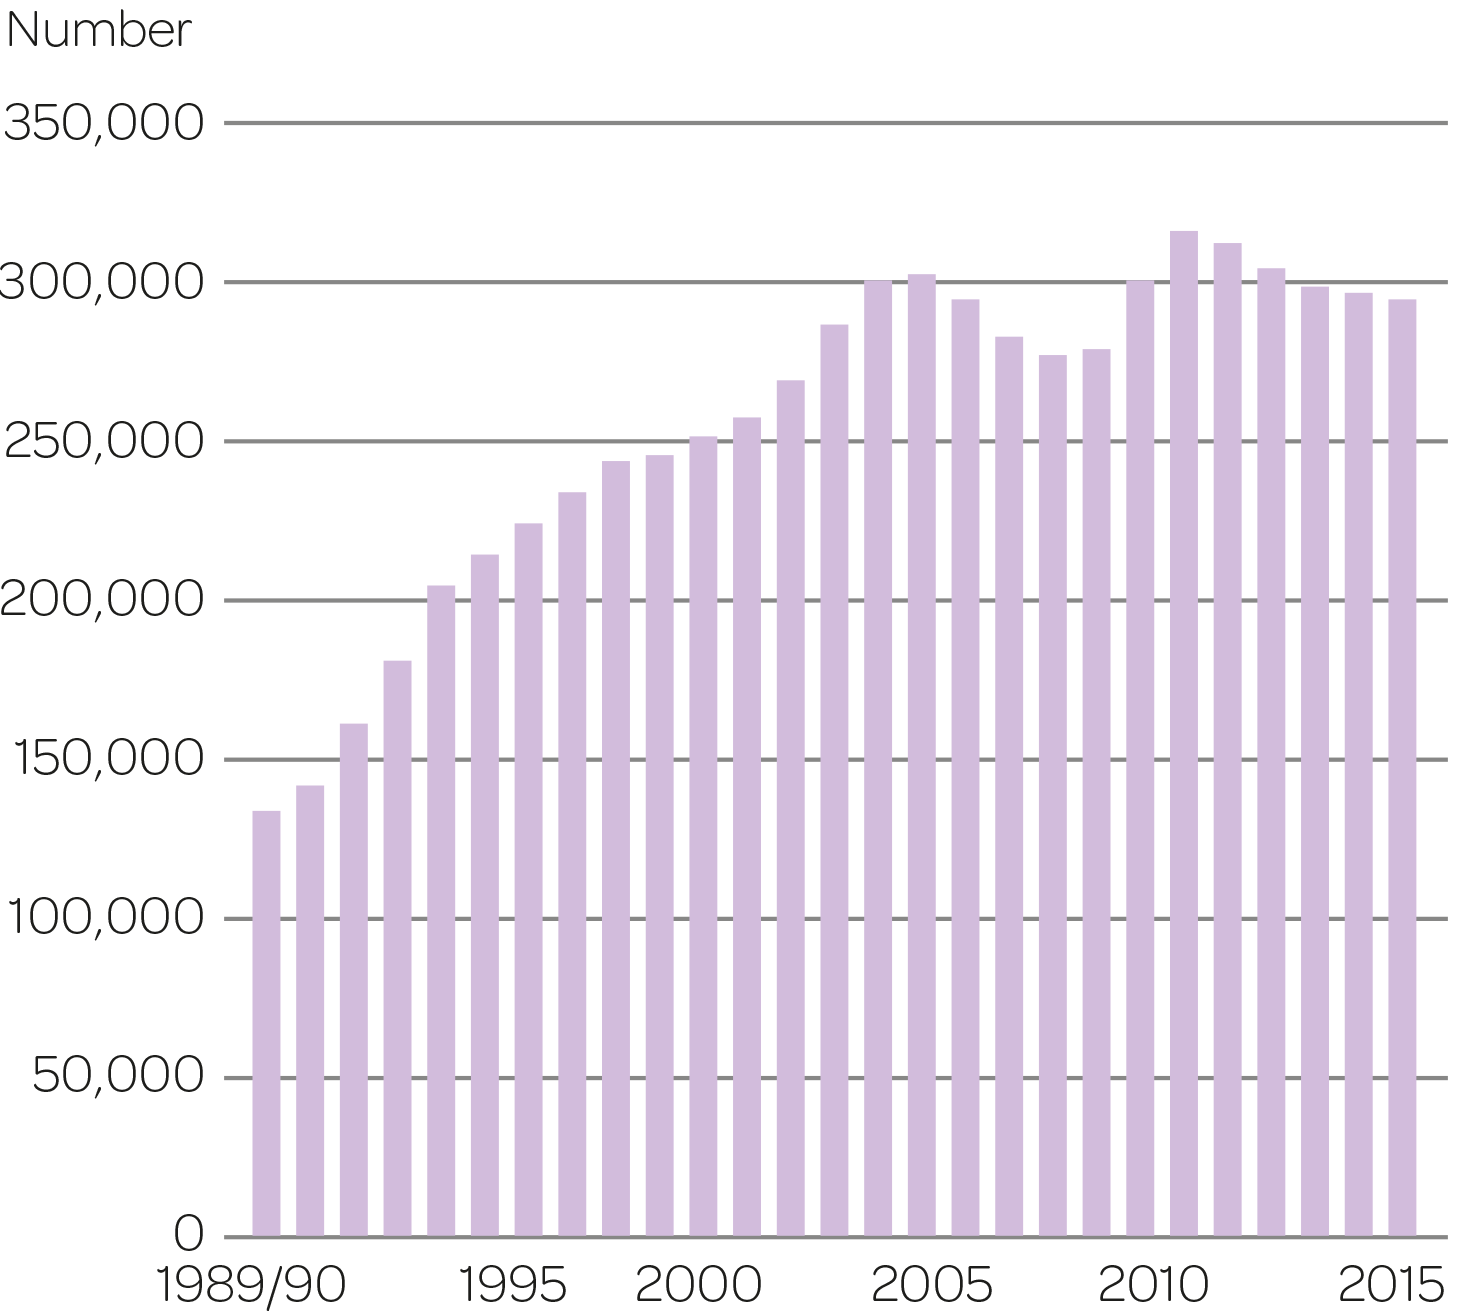 Number of FTEs 1989/90–2015.